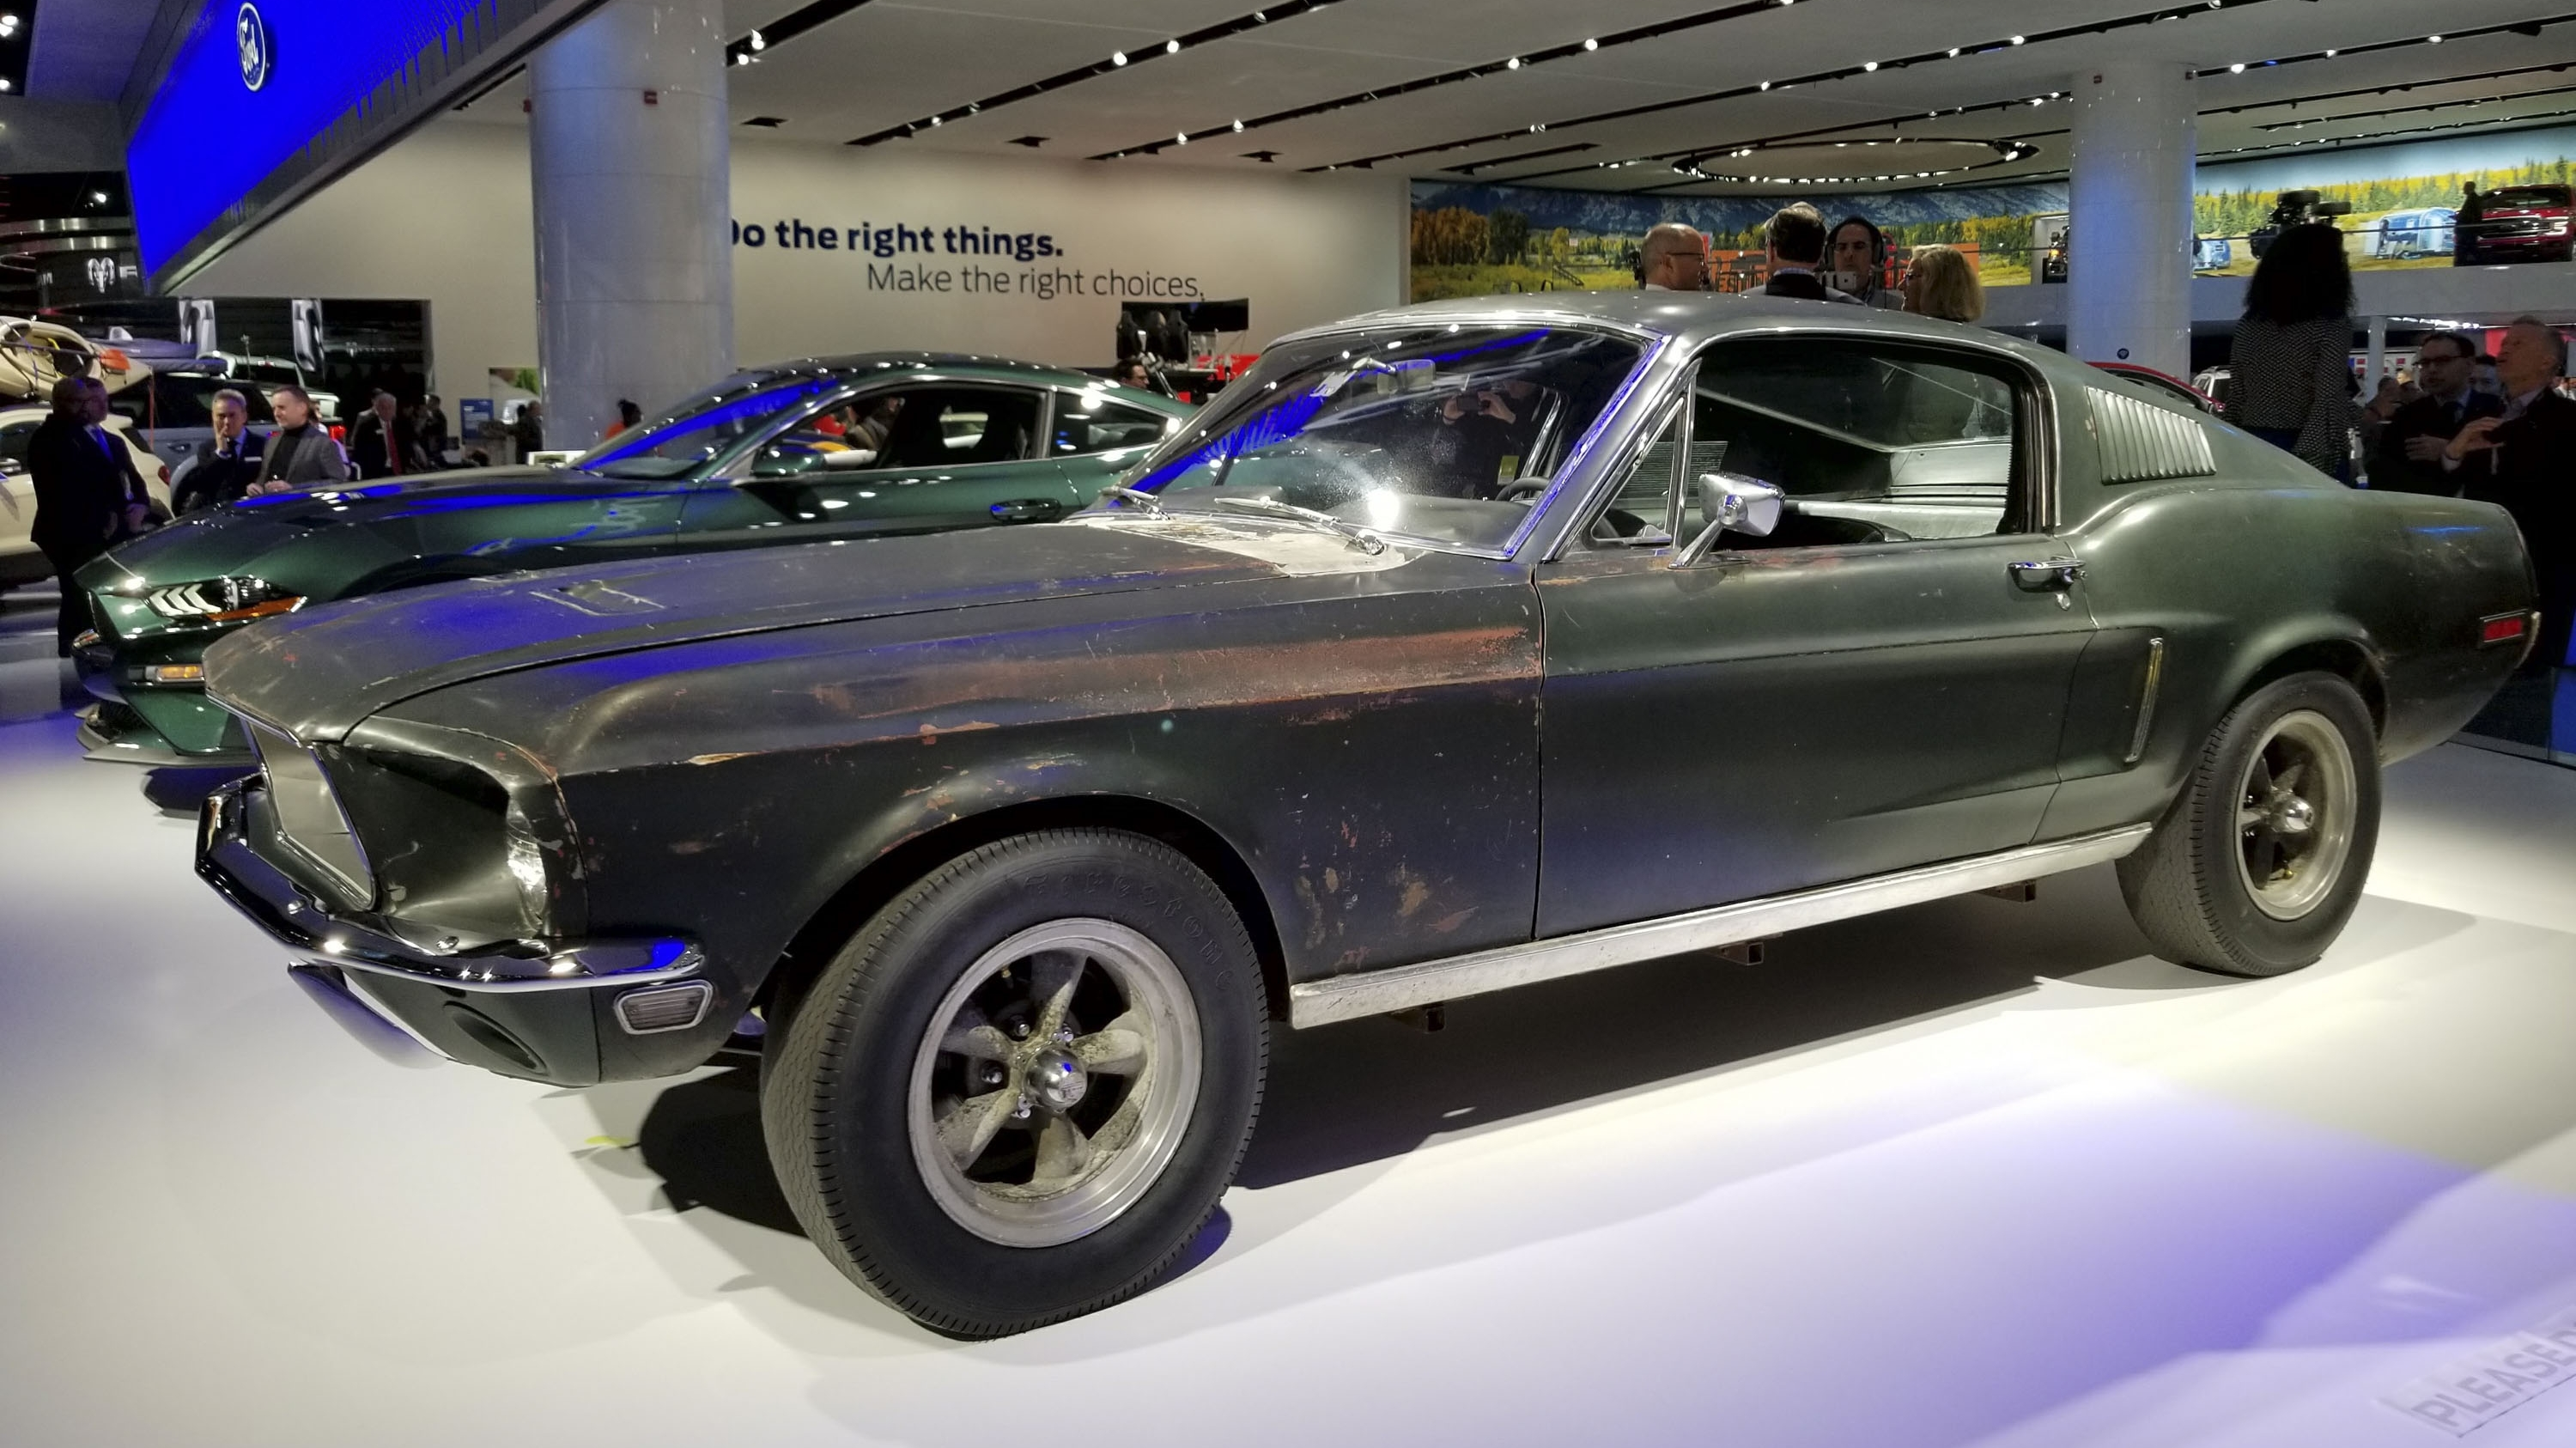 Og 1968 ford mustang bullitt shows up alongside 2019 mustang bullitt gets inducted into the national historic vehicle top speed